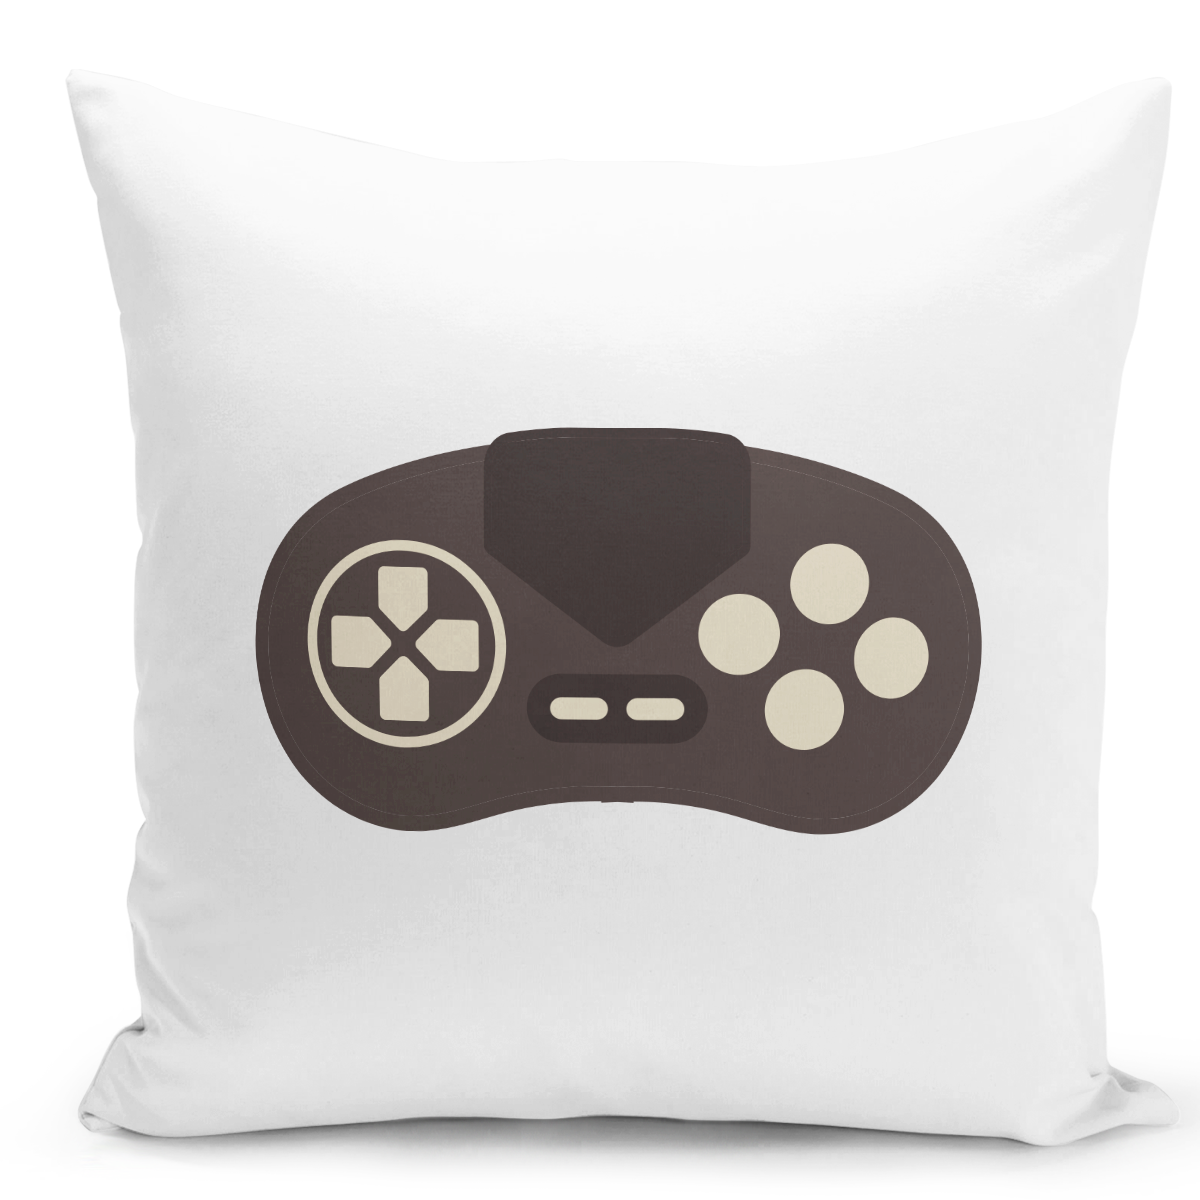 White-Throw-Pillow-Gamers-Pillow-Game-Controller-Print---Pure-White-Printed-16-x-16-inch-Square-Home-Decor-Couch-Pillow-